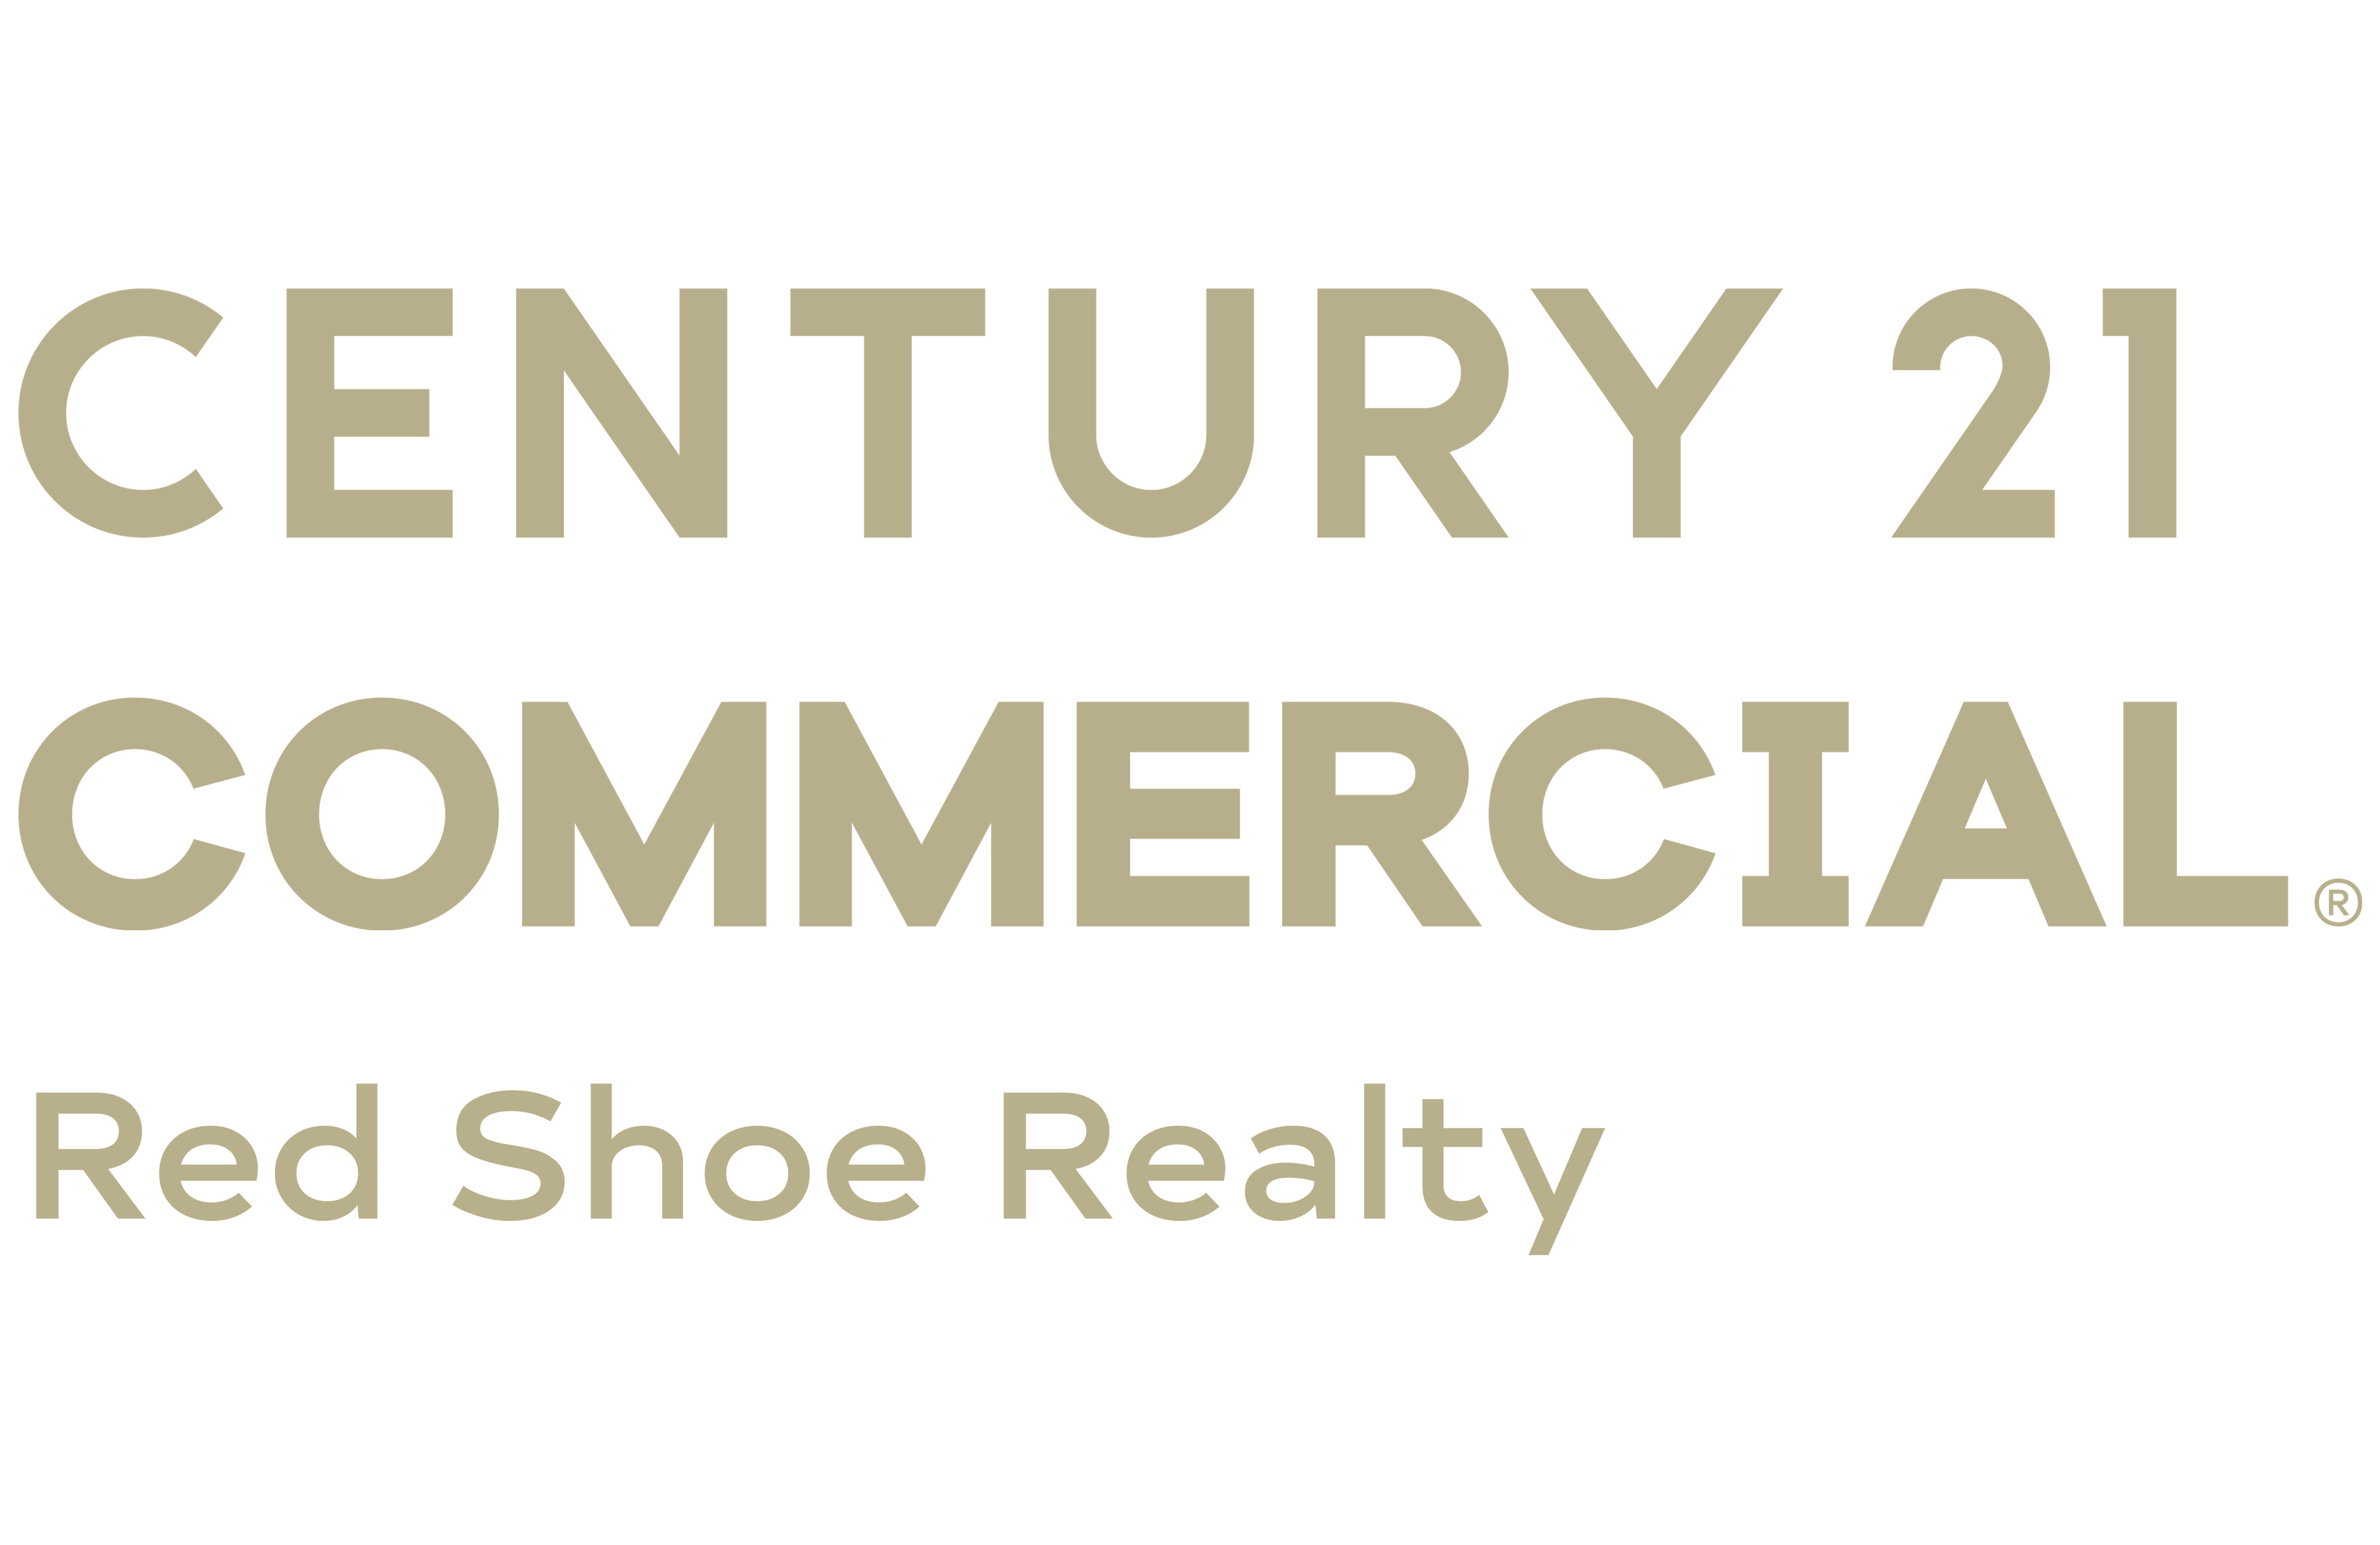 CENTURY 21 Red Shoe Realty